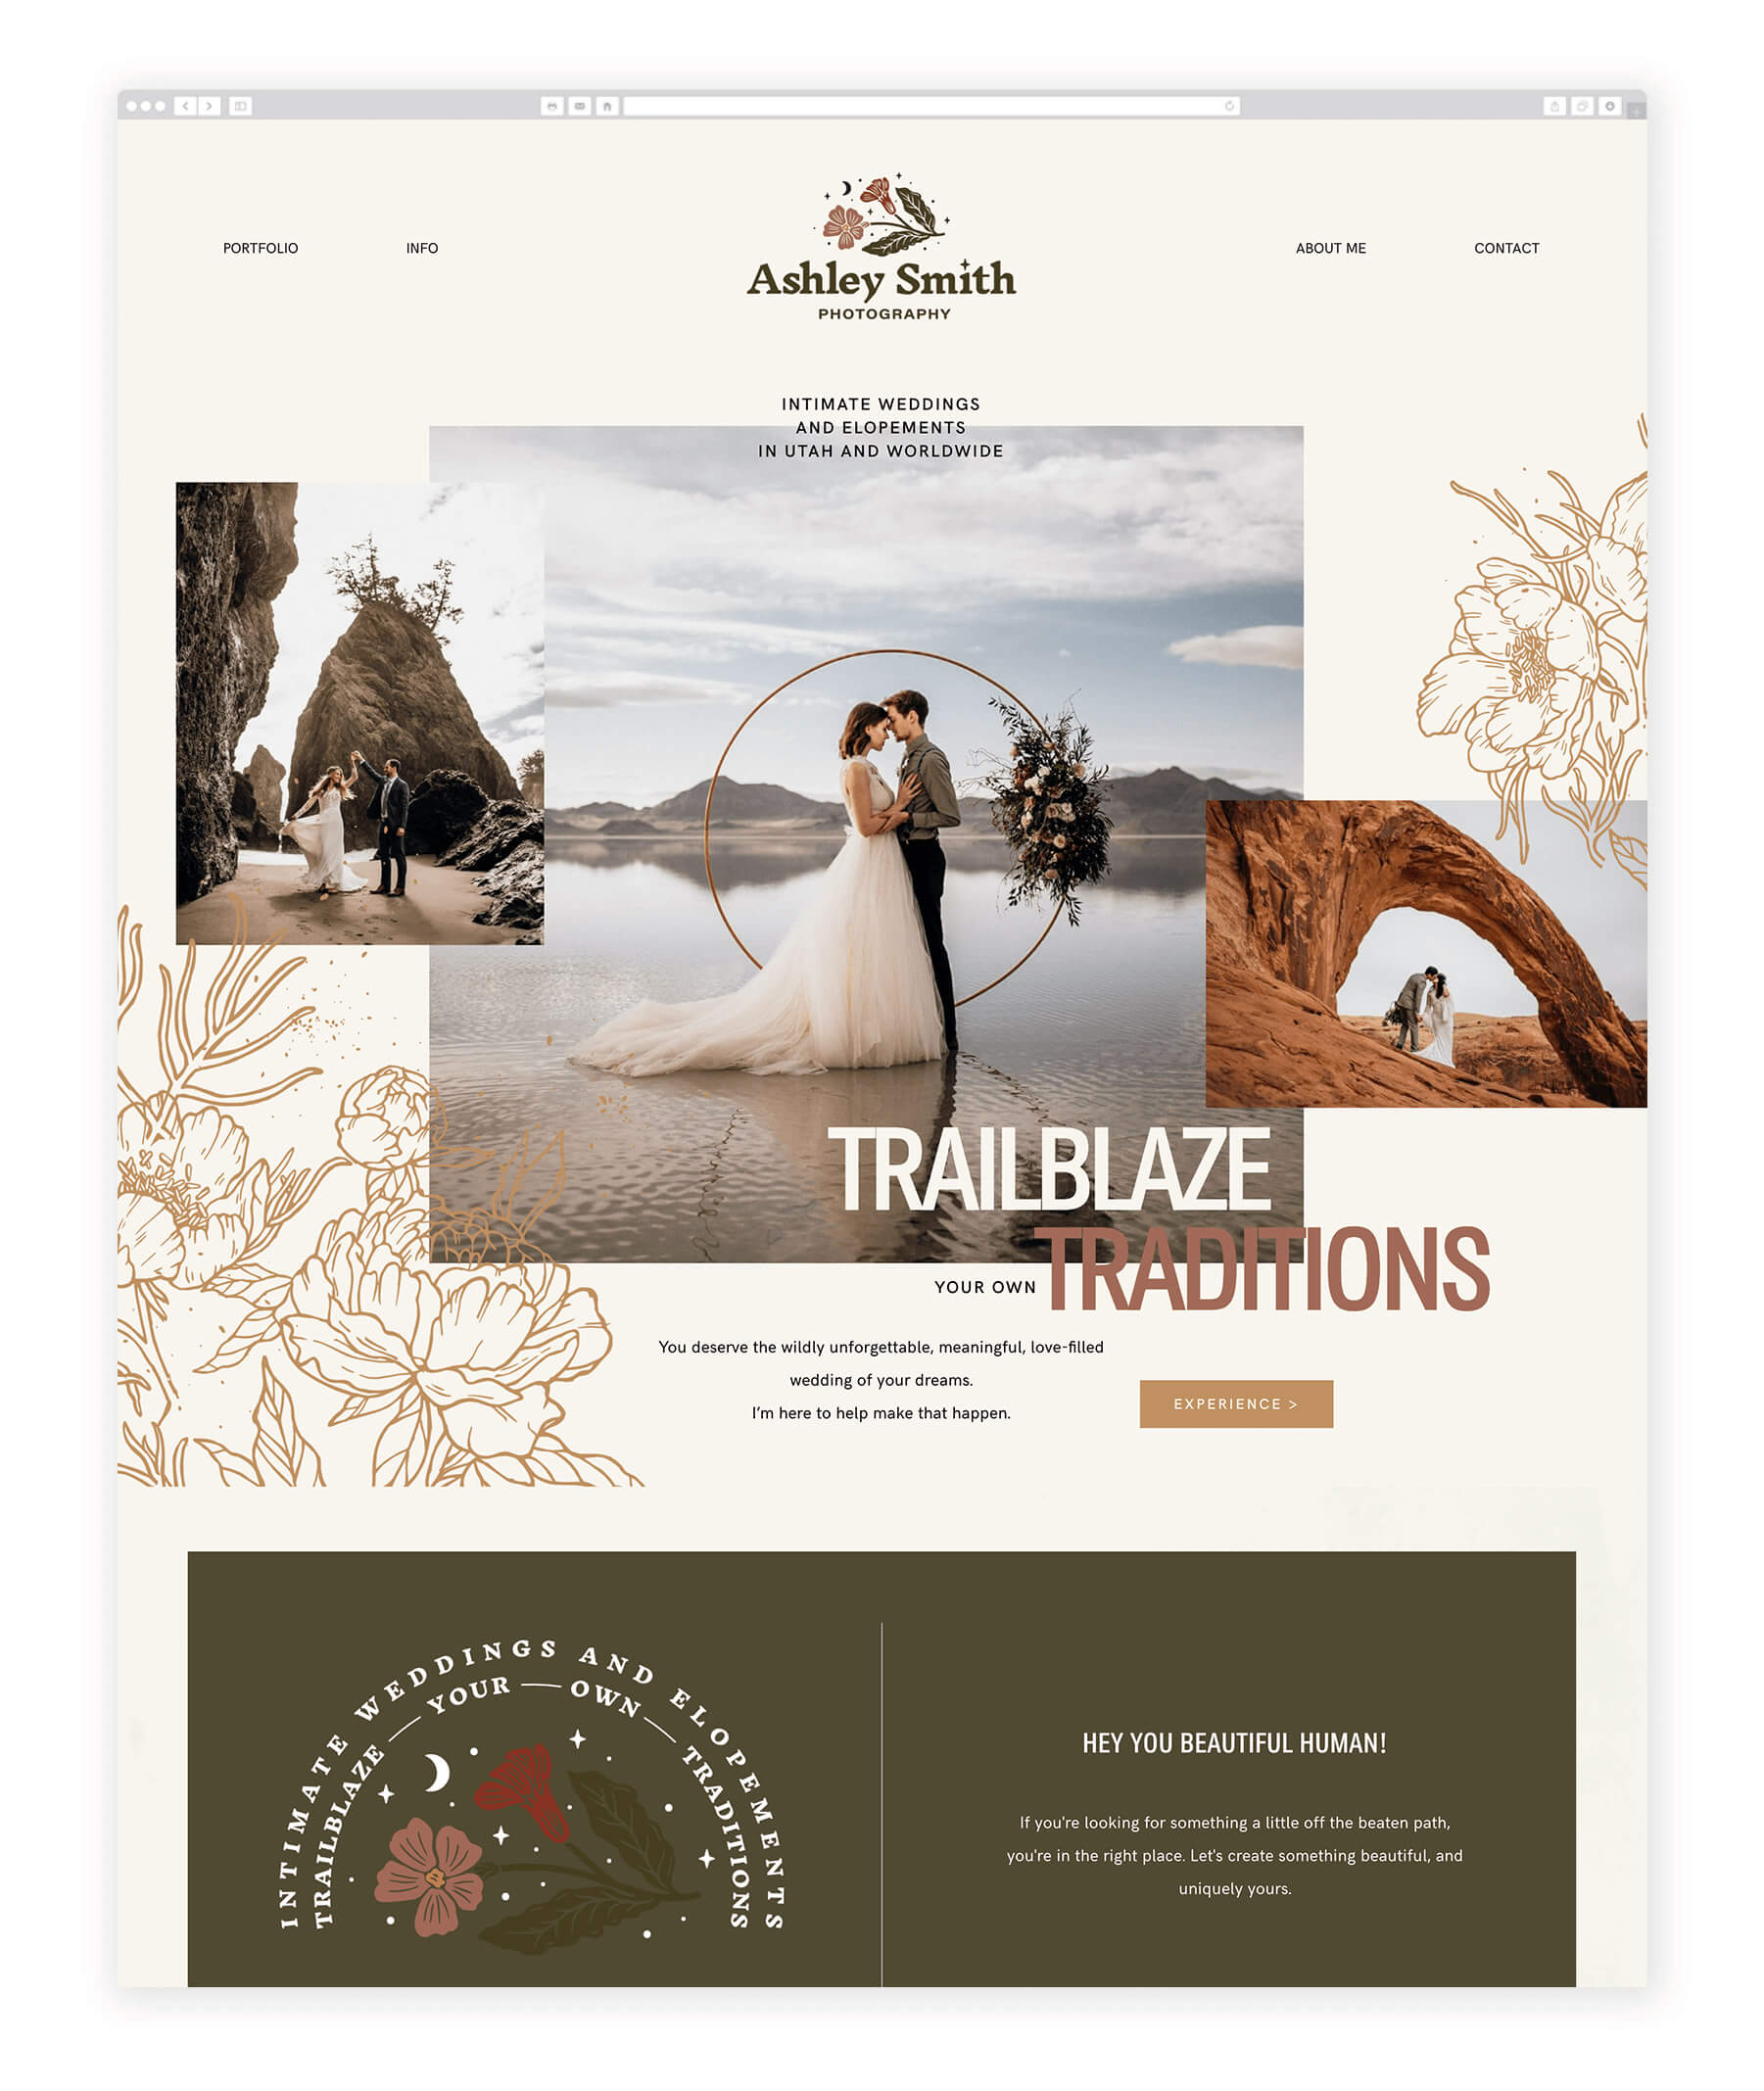 ashley-smith-photos-wordpress-website-june-theme